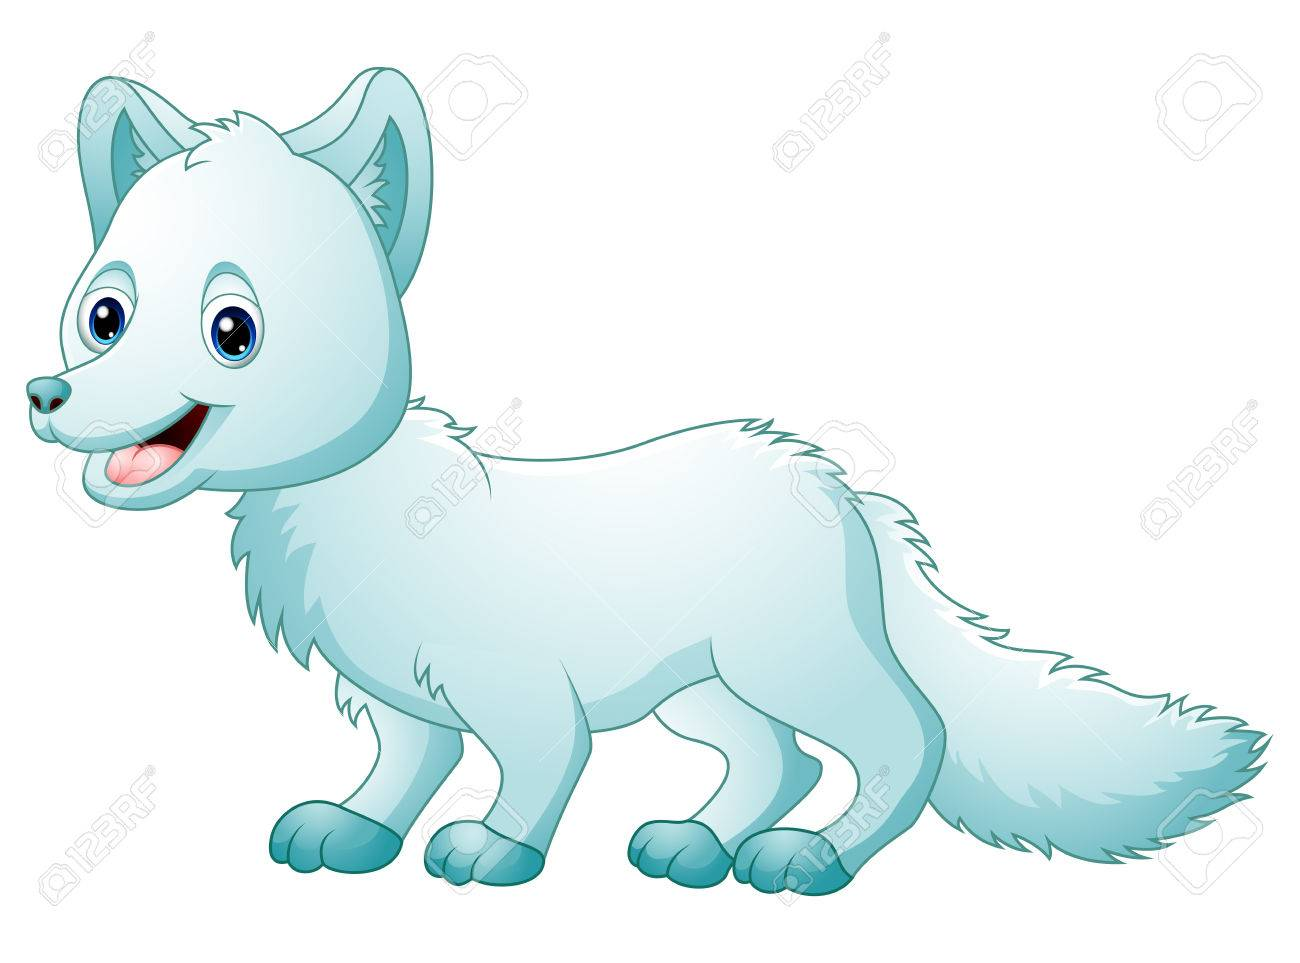 Line Drawing Fox : Arctic fox drawing at getdrawings.com free for personal use